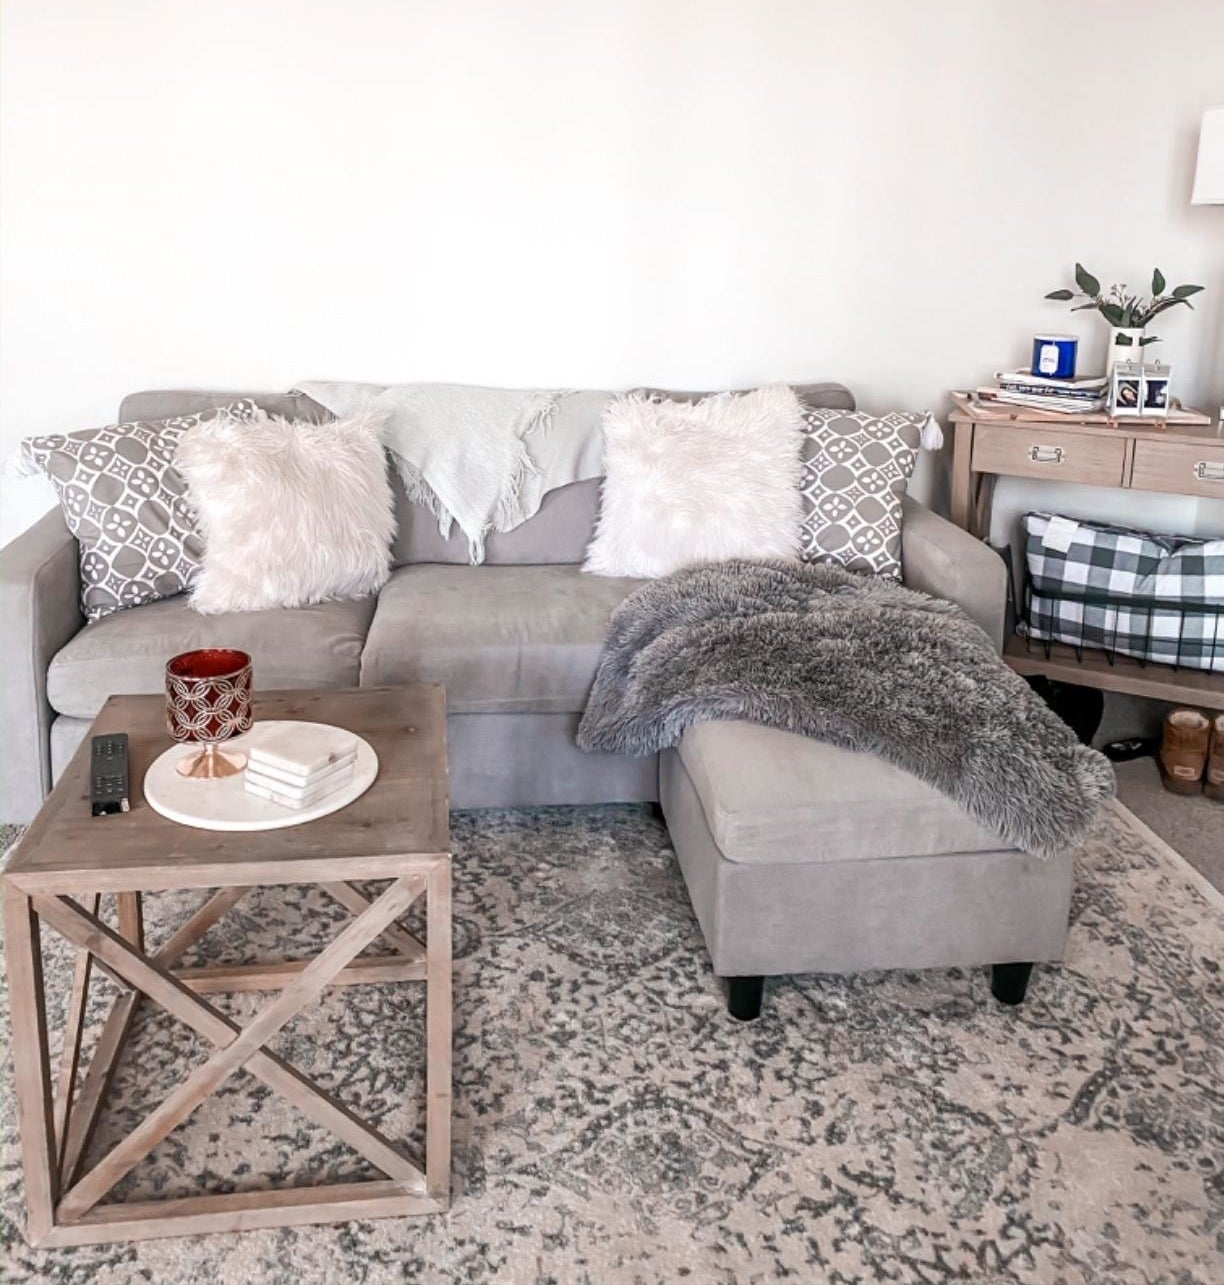 Reviewer pic of the couch in grey with an ottoman, making it into an l-shaped couch in a living room.